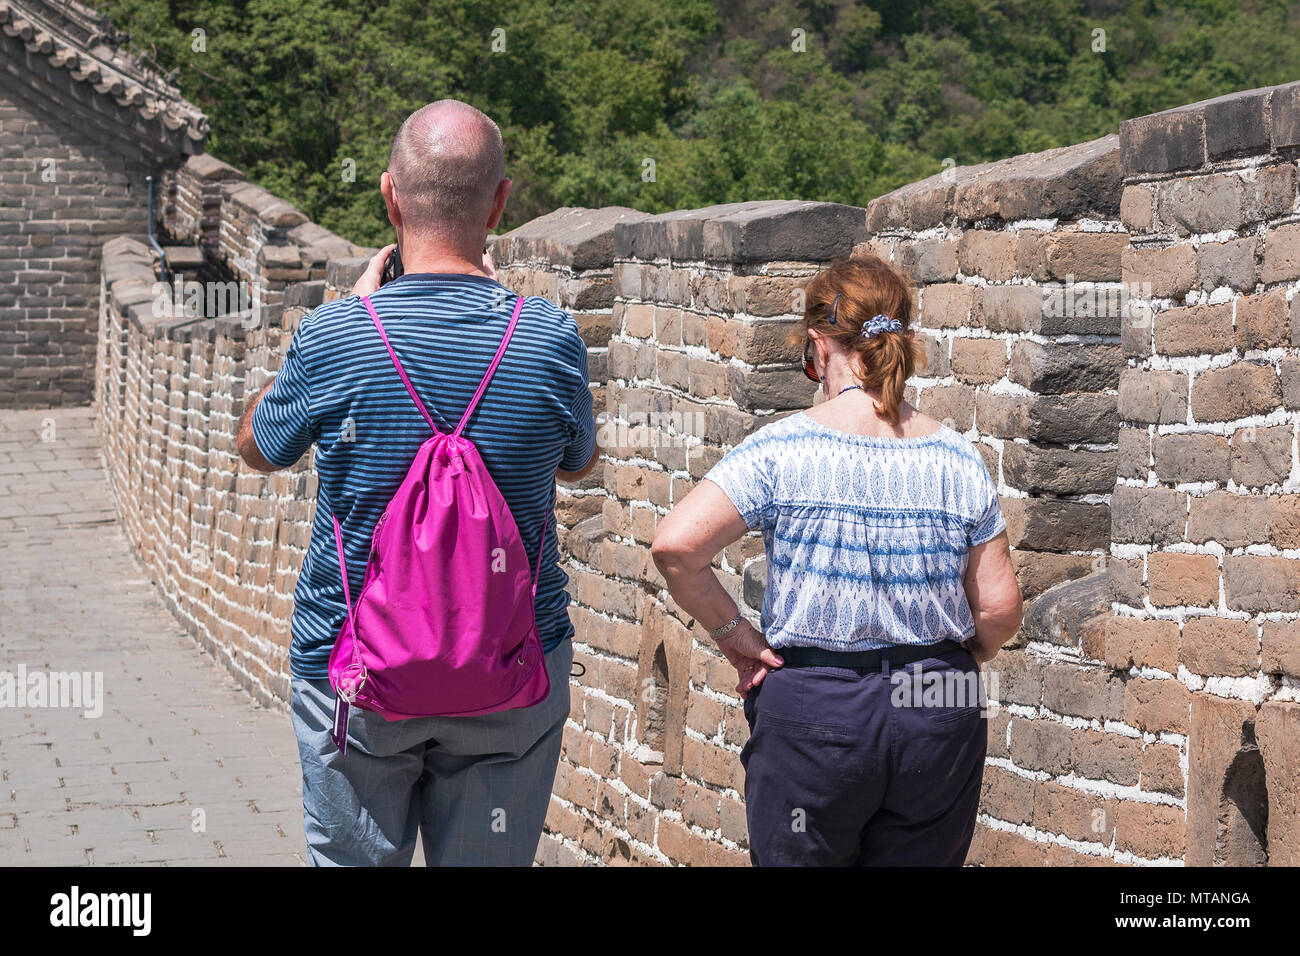 Tourists on the Great Wall of China - Stock Image